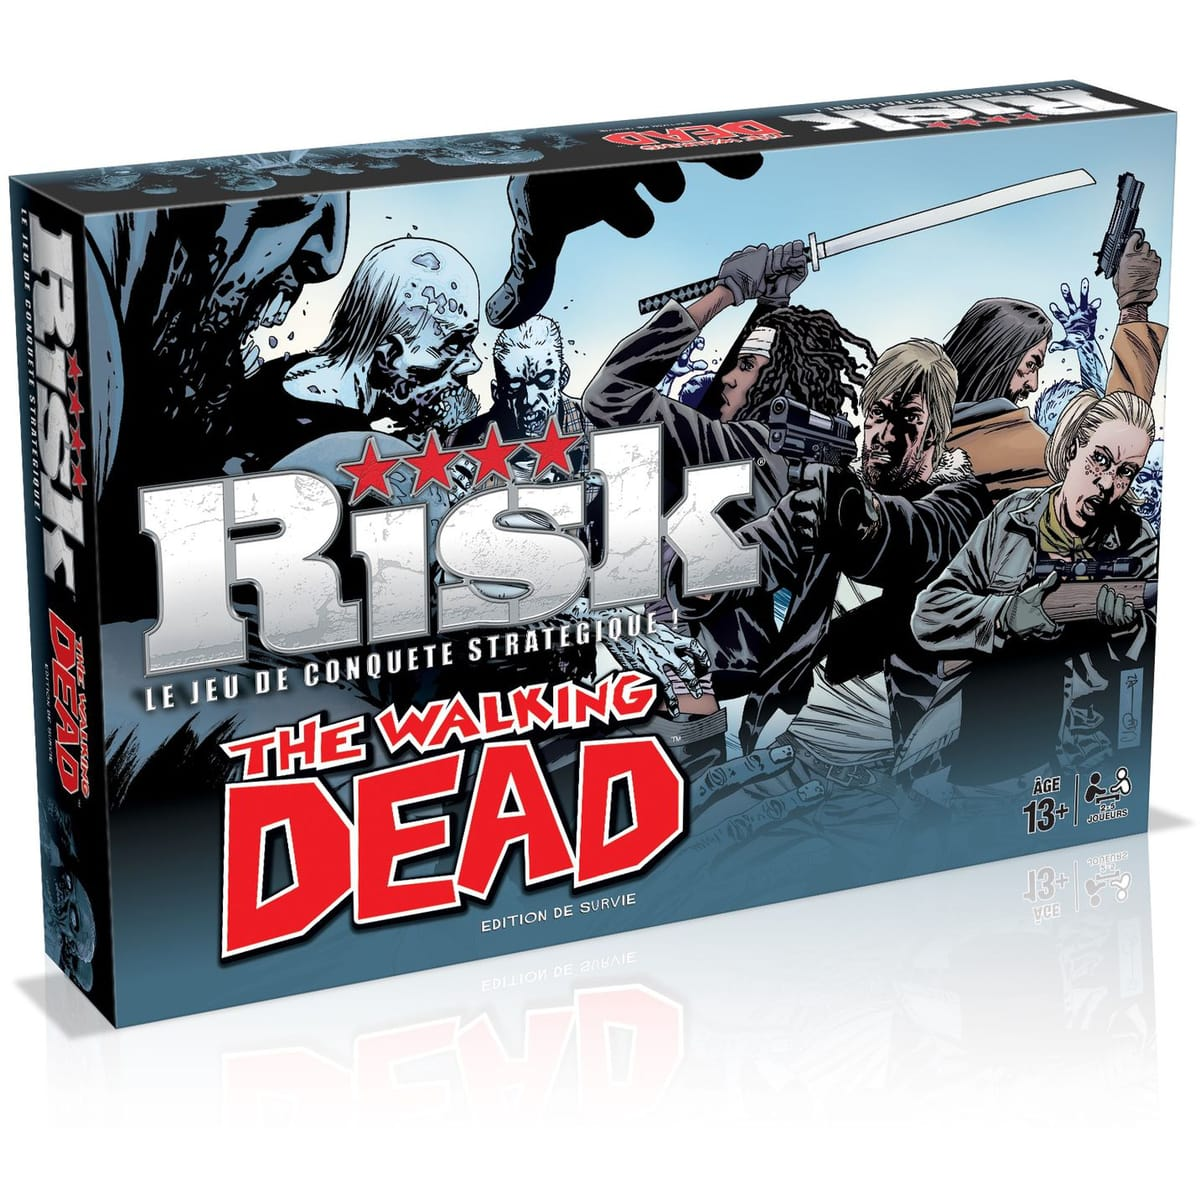 Risk version The Walking Dead à 12 € chez Auchan via remise fidélité